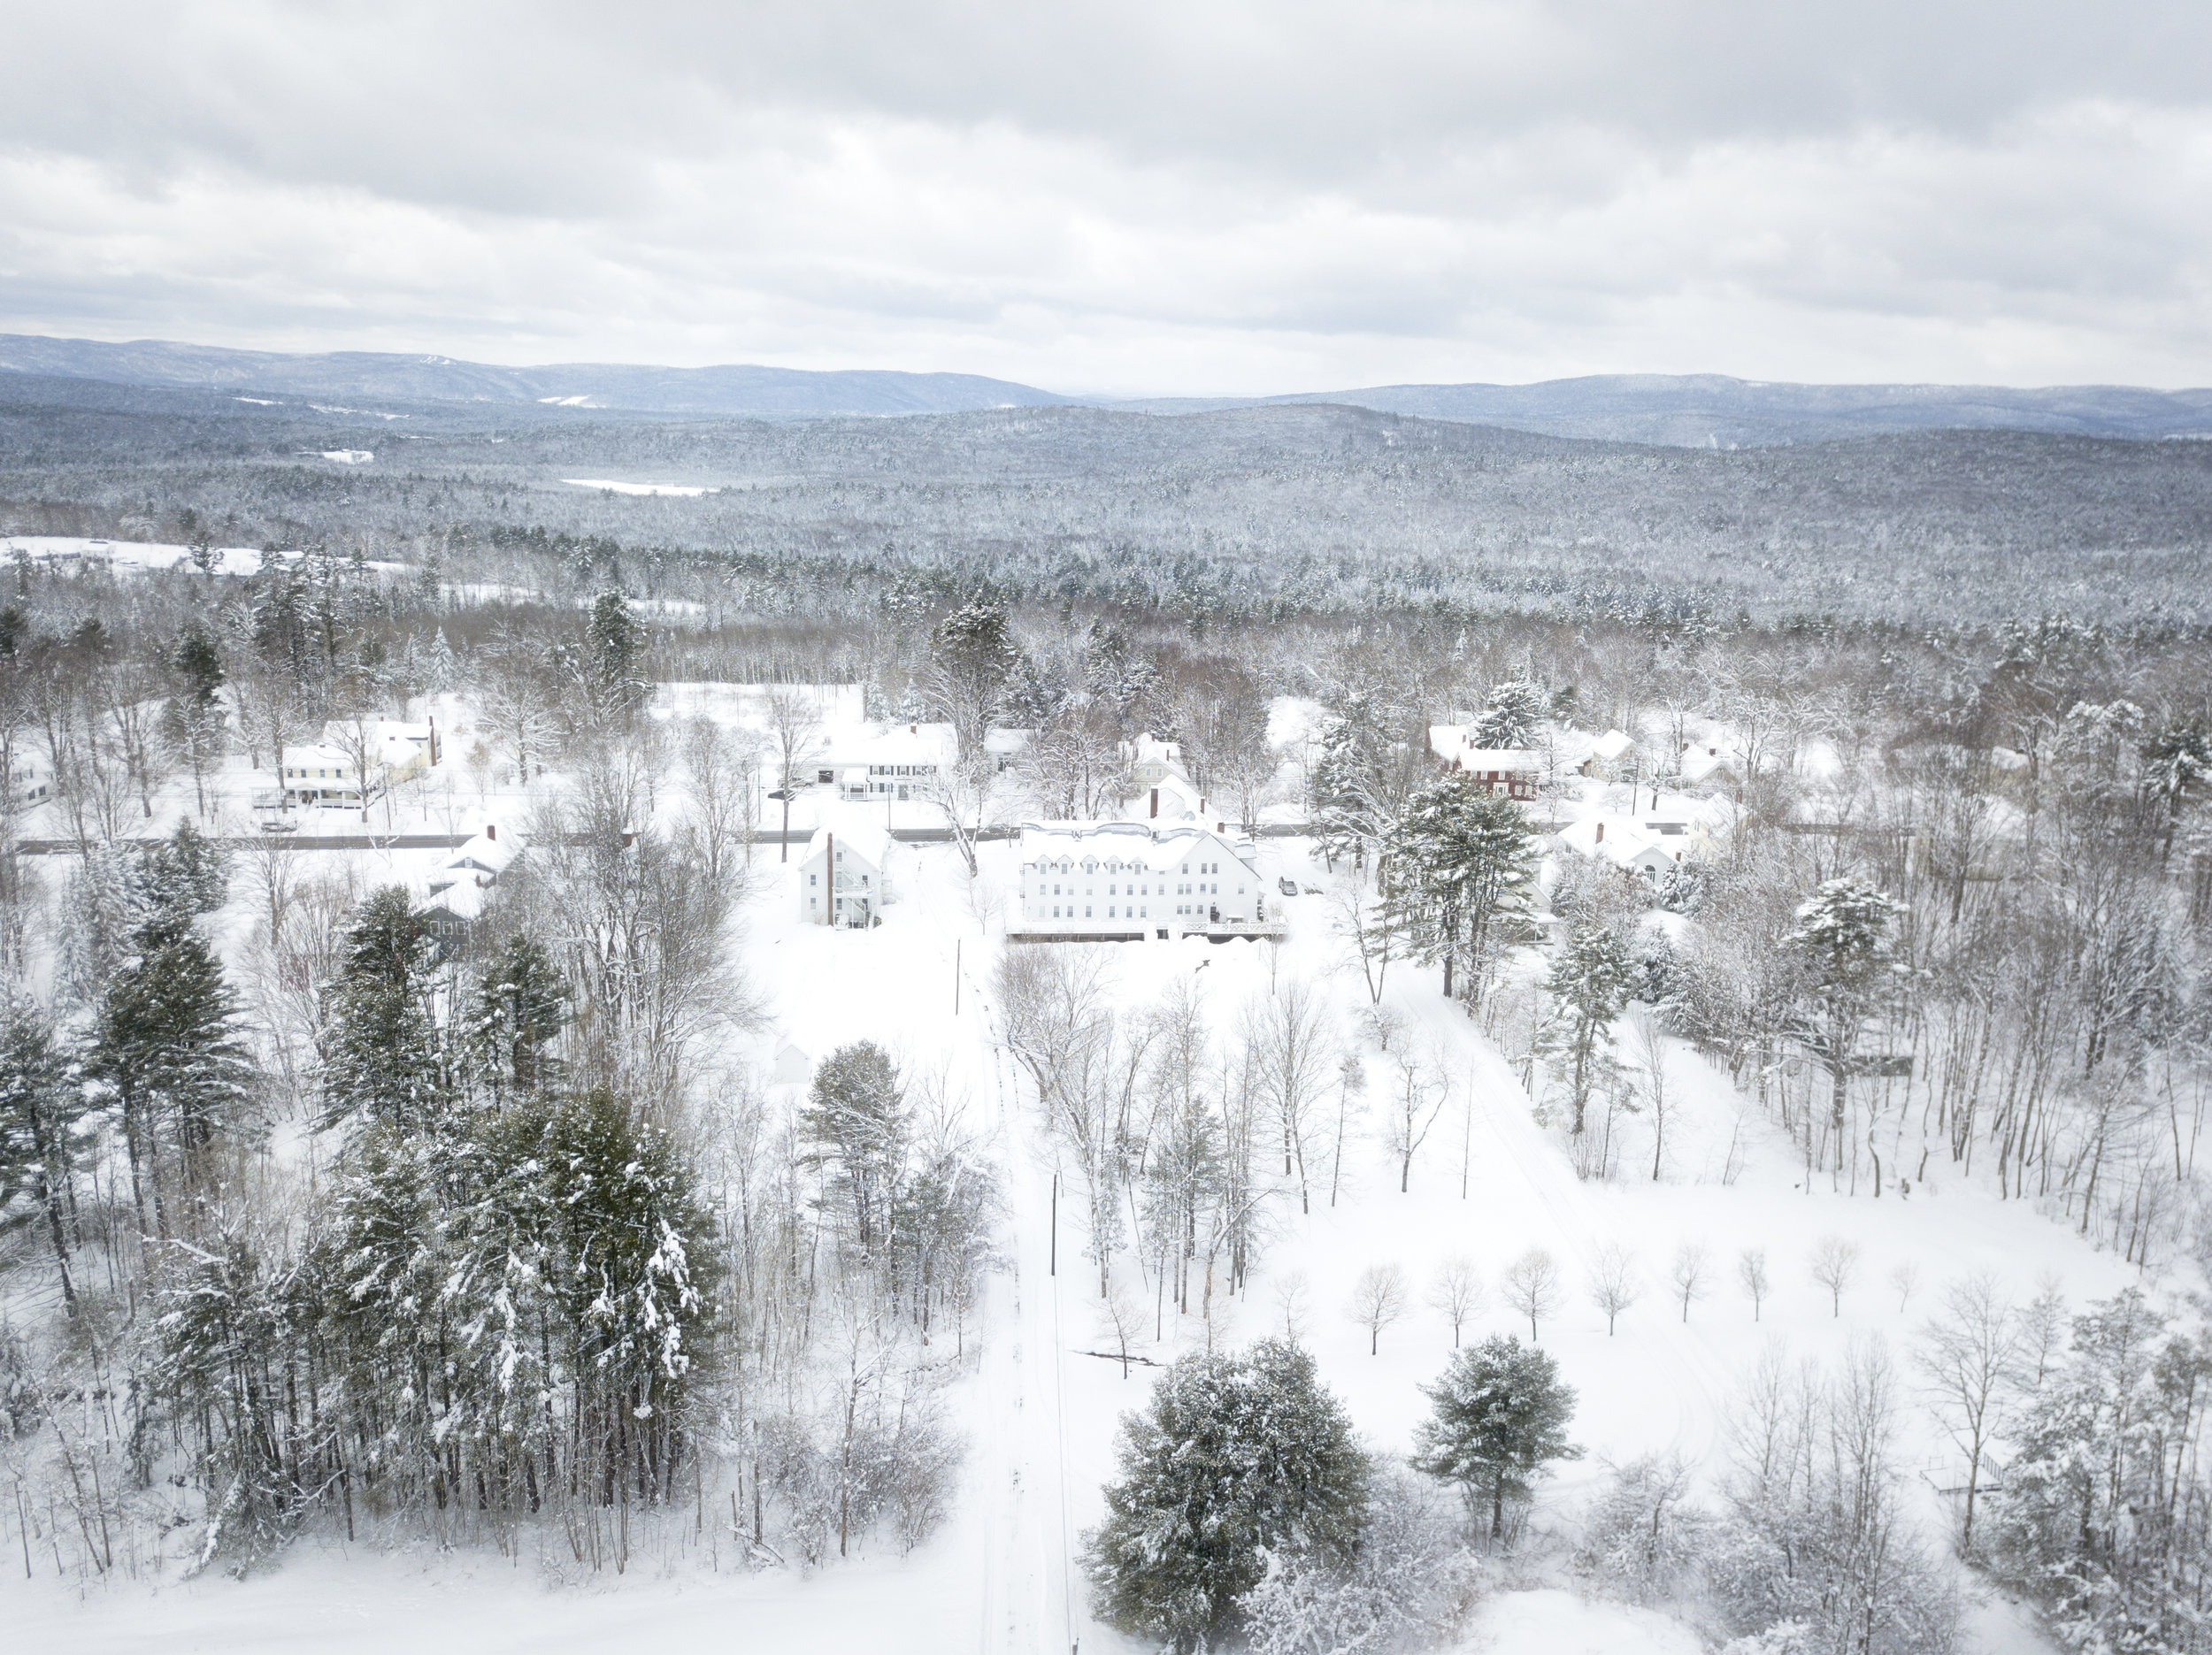 A winter view from above